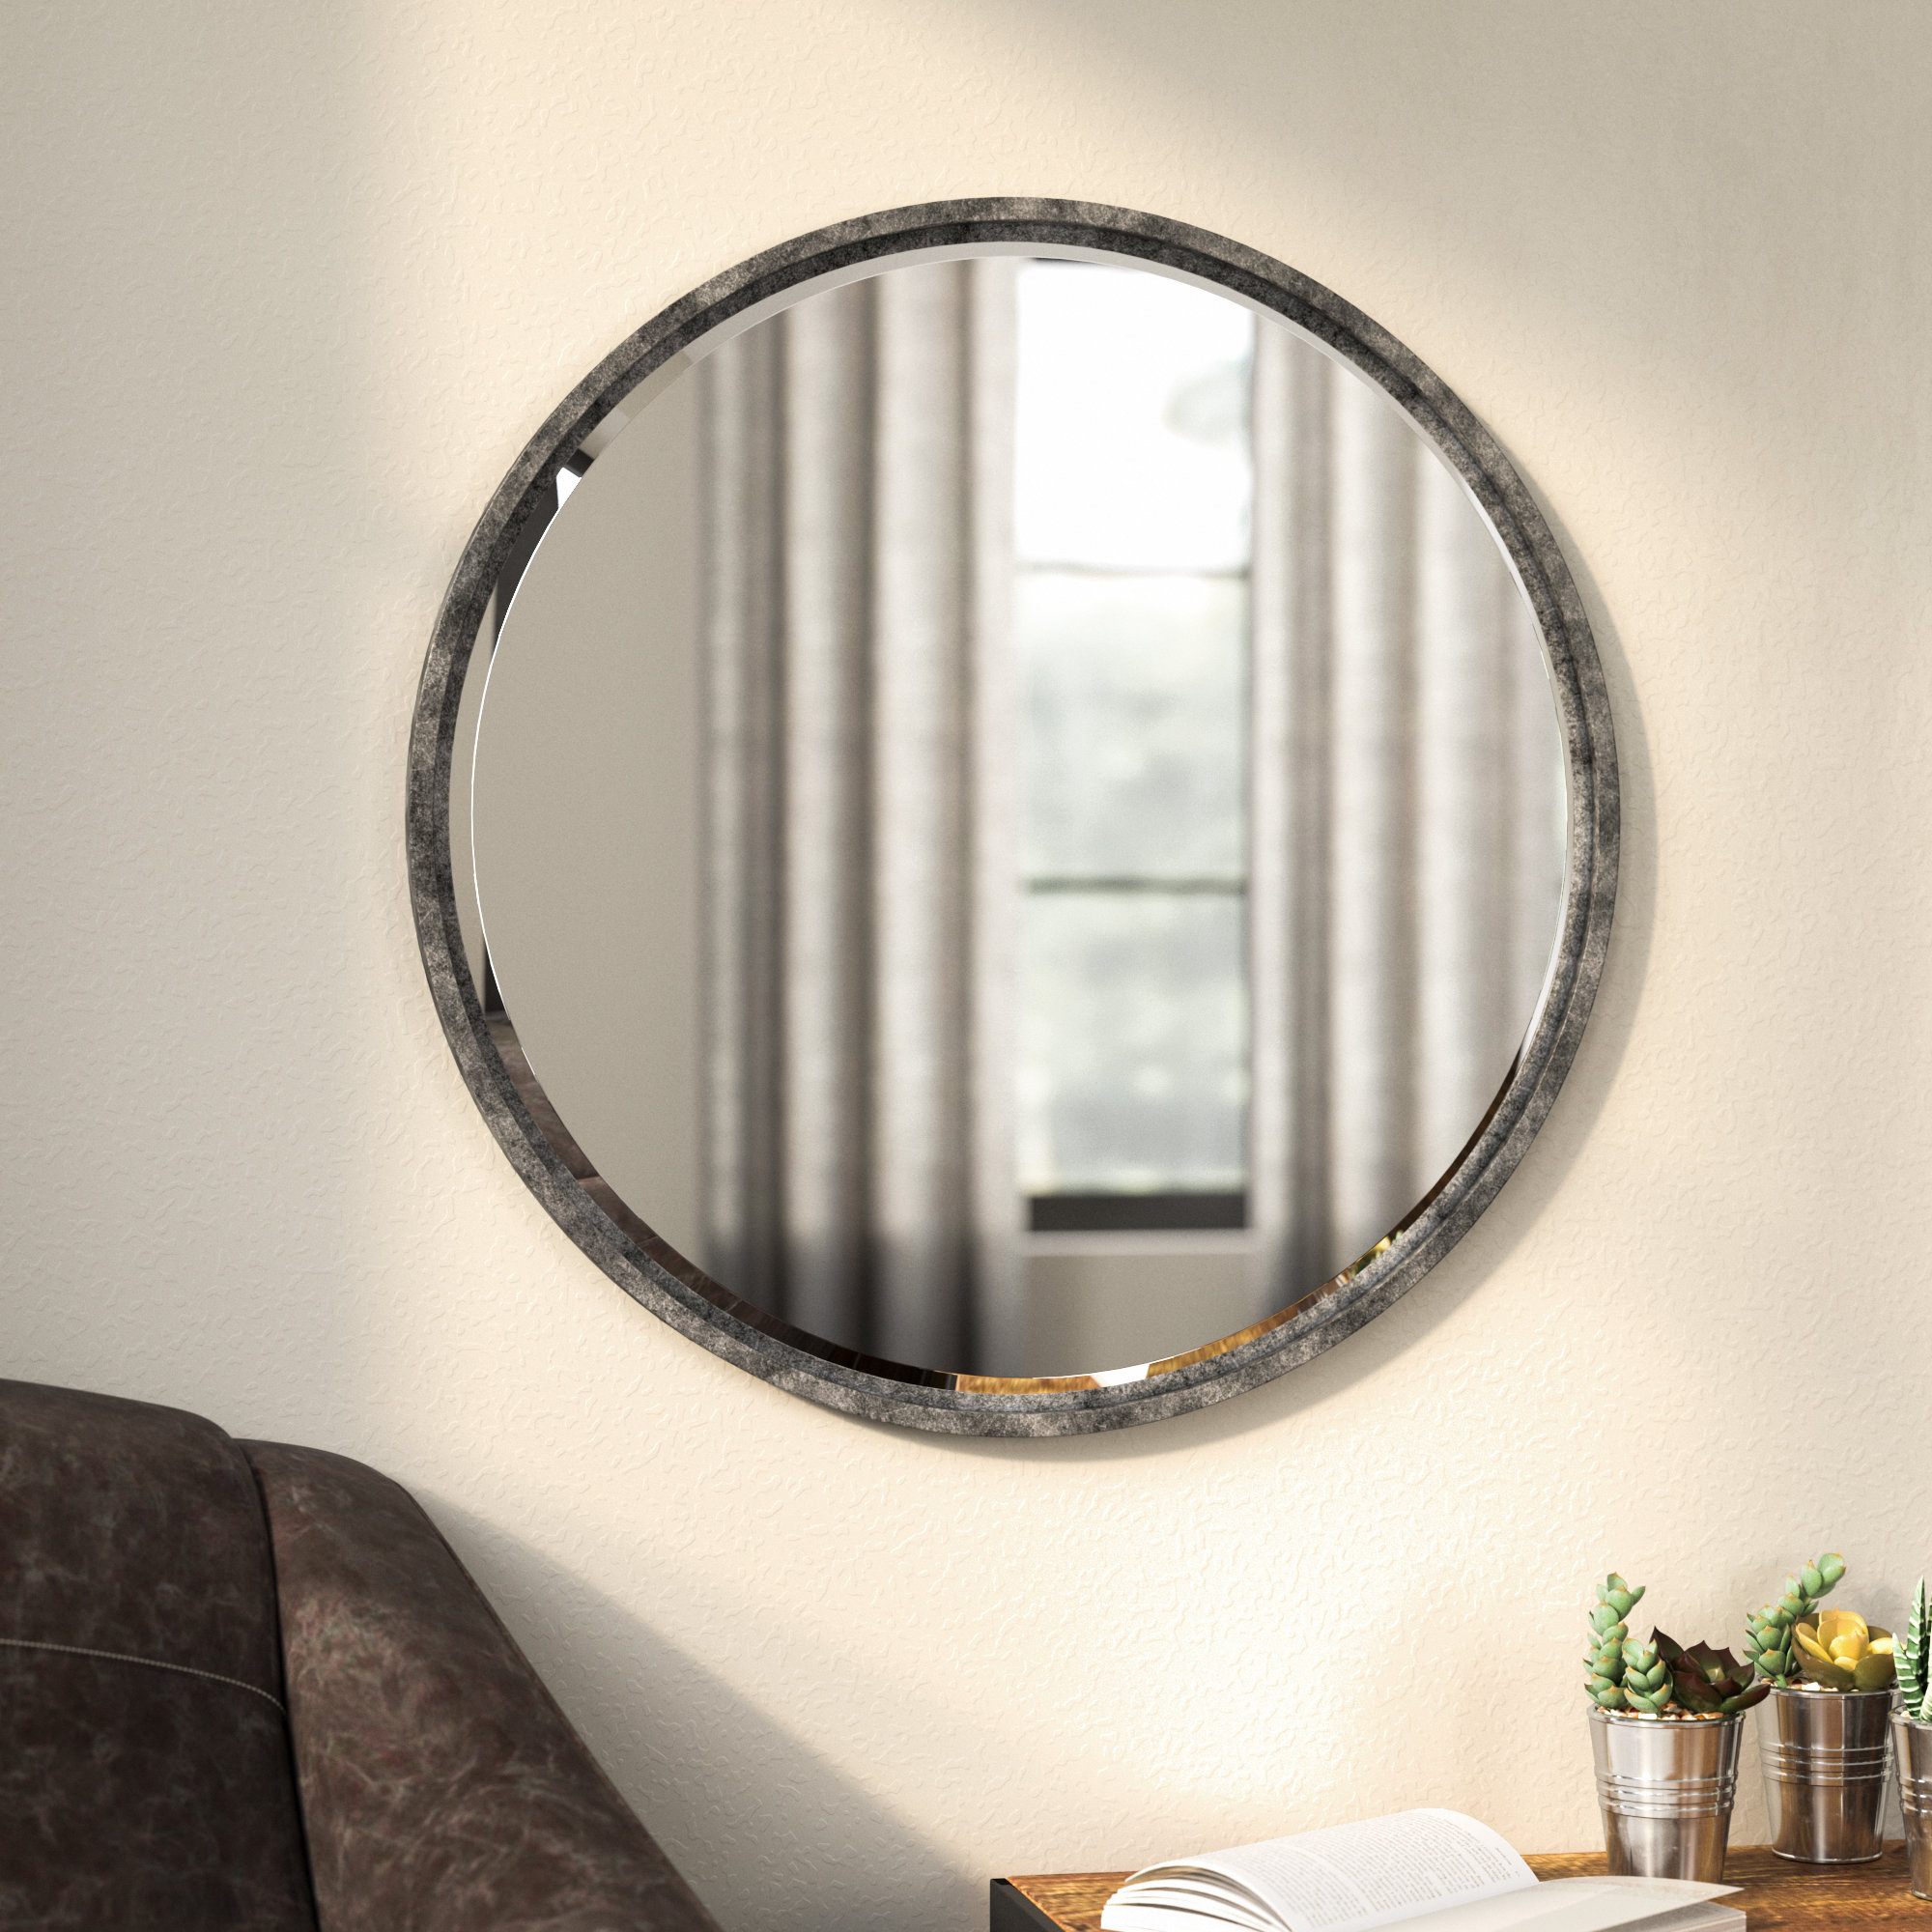 Accent Mirror Within Charters Towers Accent Mirrors (Image 2 of 20)